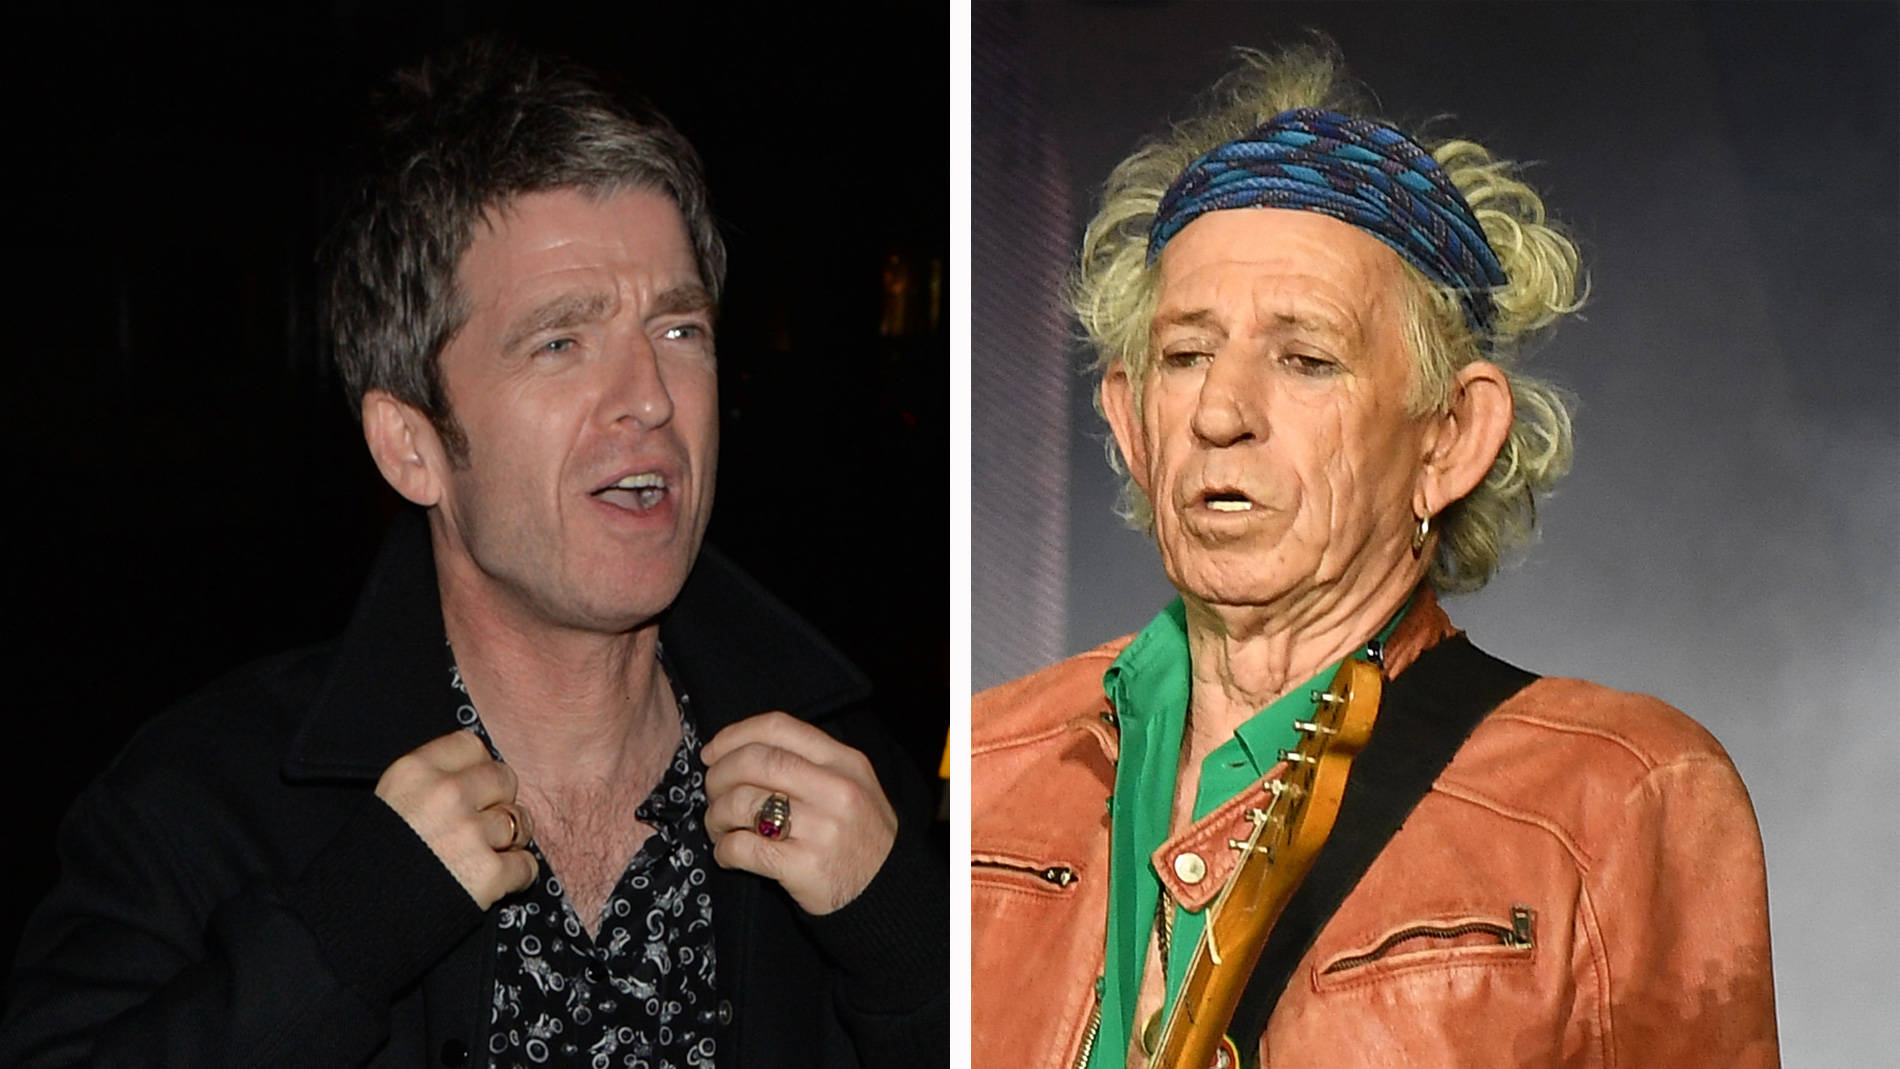 VIDEO: Noel Gallagher spent New Year's Eve with Keith